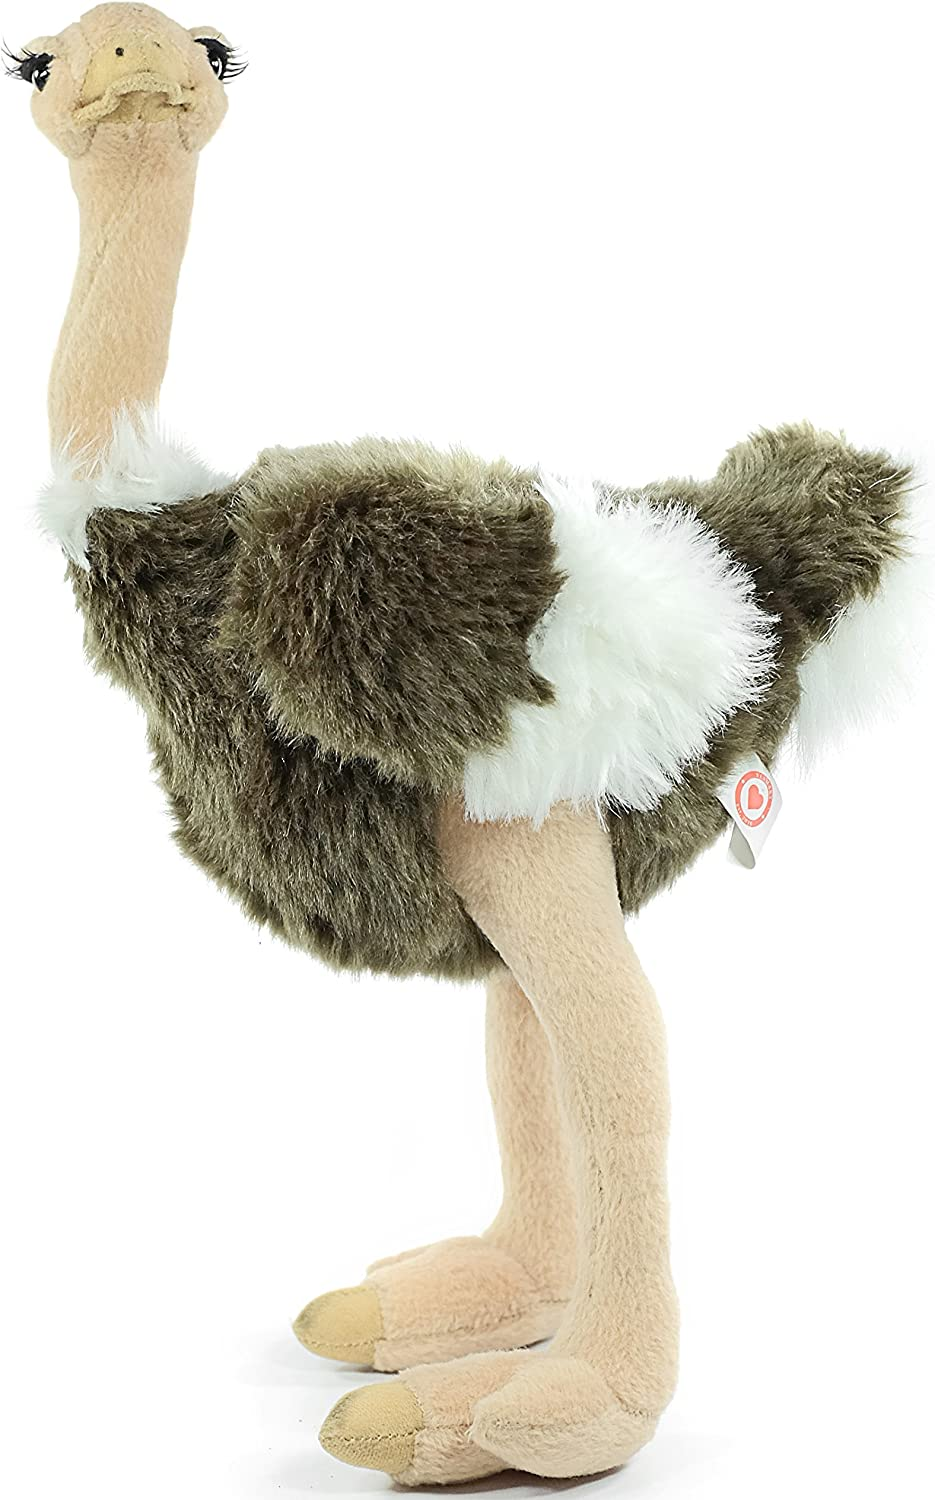 Ola The Ostrich - 11 Inch Realistic Looking Stuffed Animal Plush - by Tiger Tale Toys